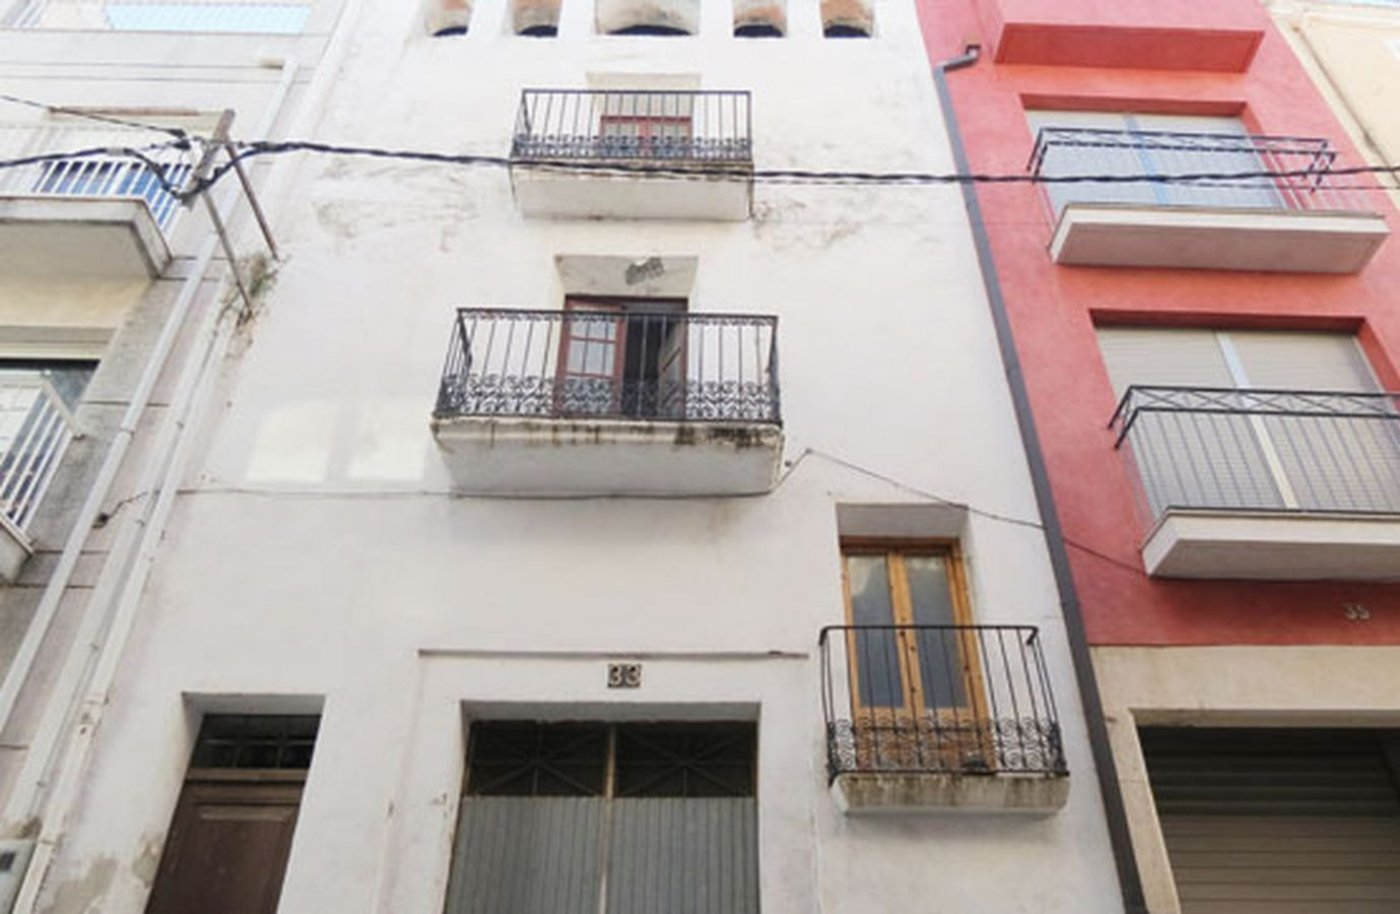 House for sale in Centro, Ulldecona